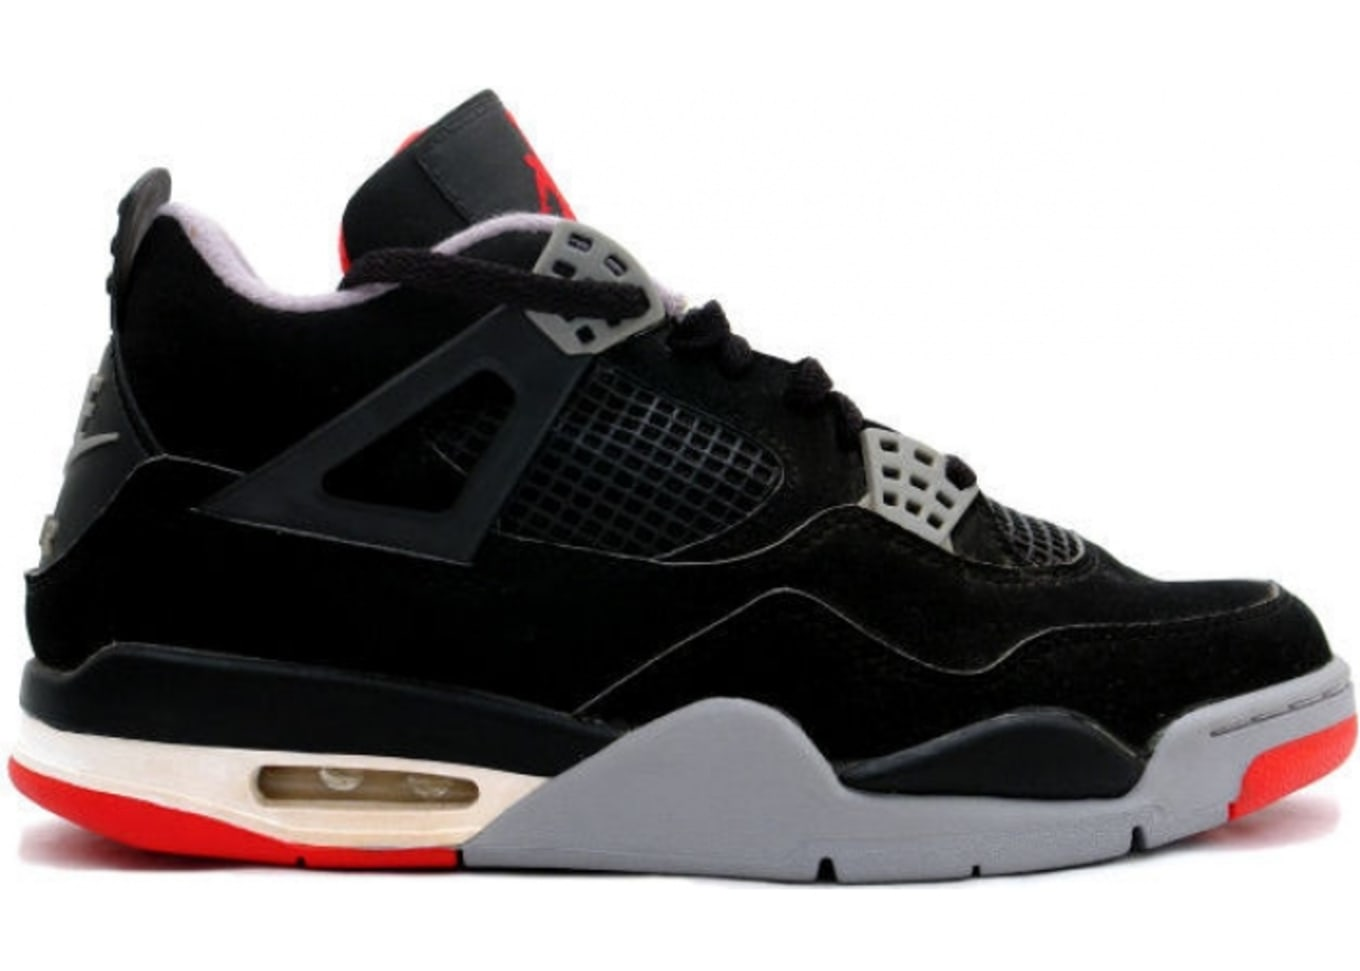 premium selection c17bc 60d26 Air Jordan 4 Retro